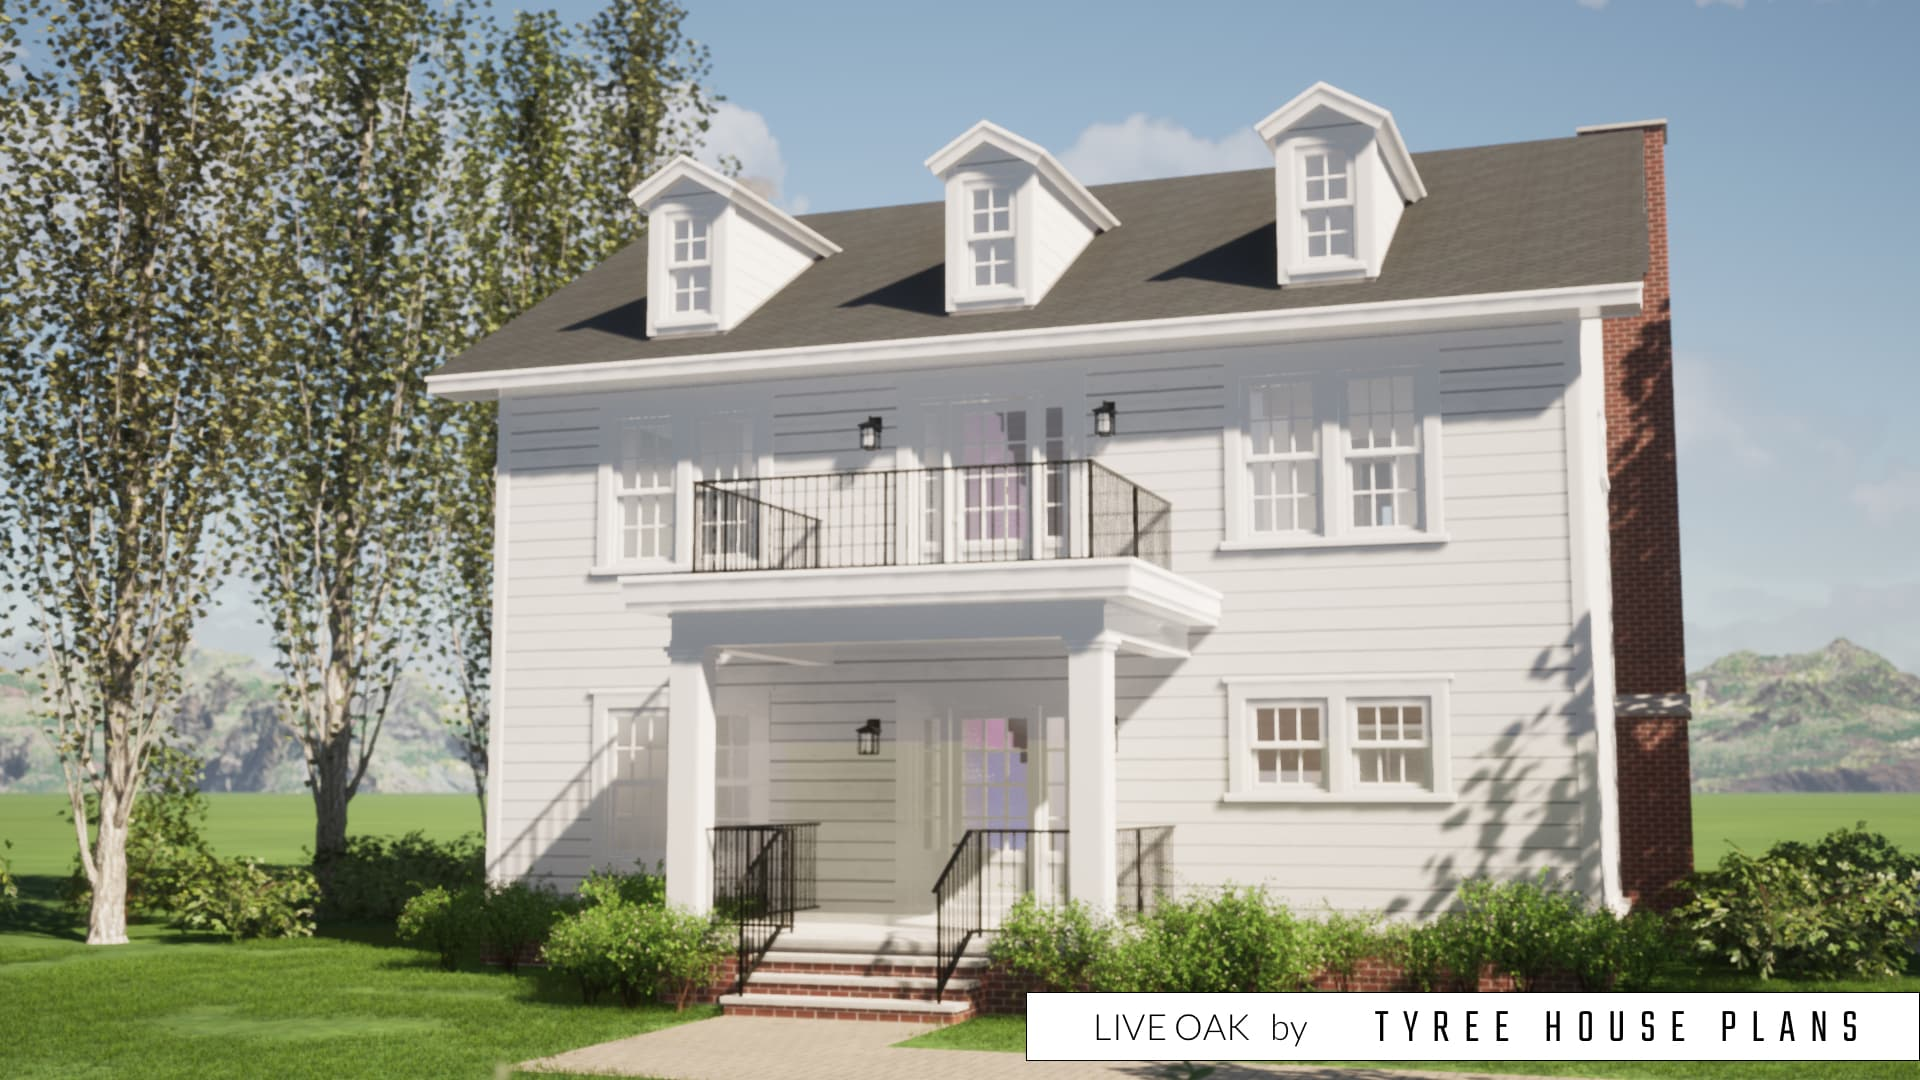 Live Oak House Plan by Tyree House Plans